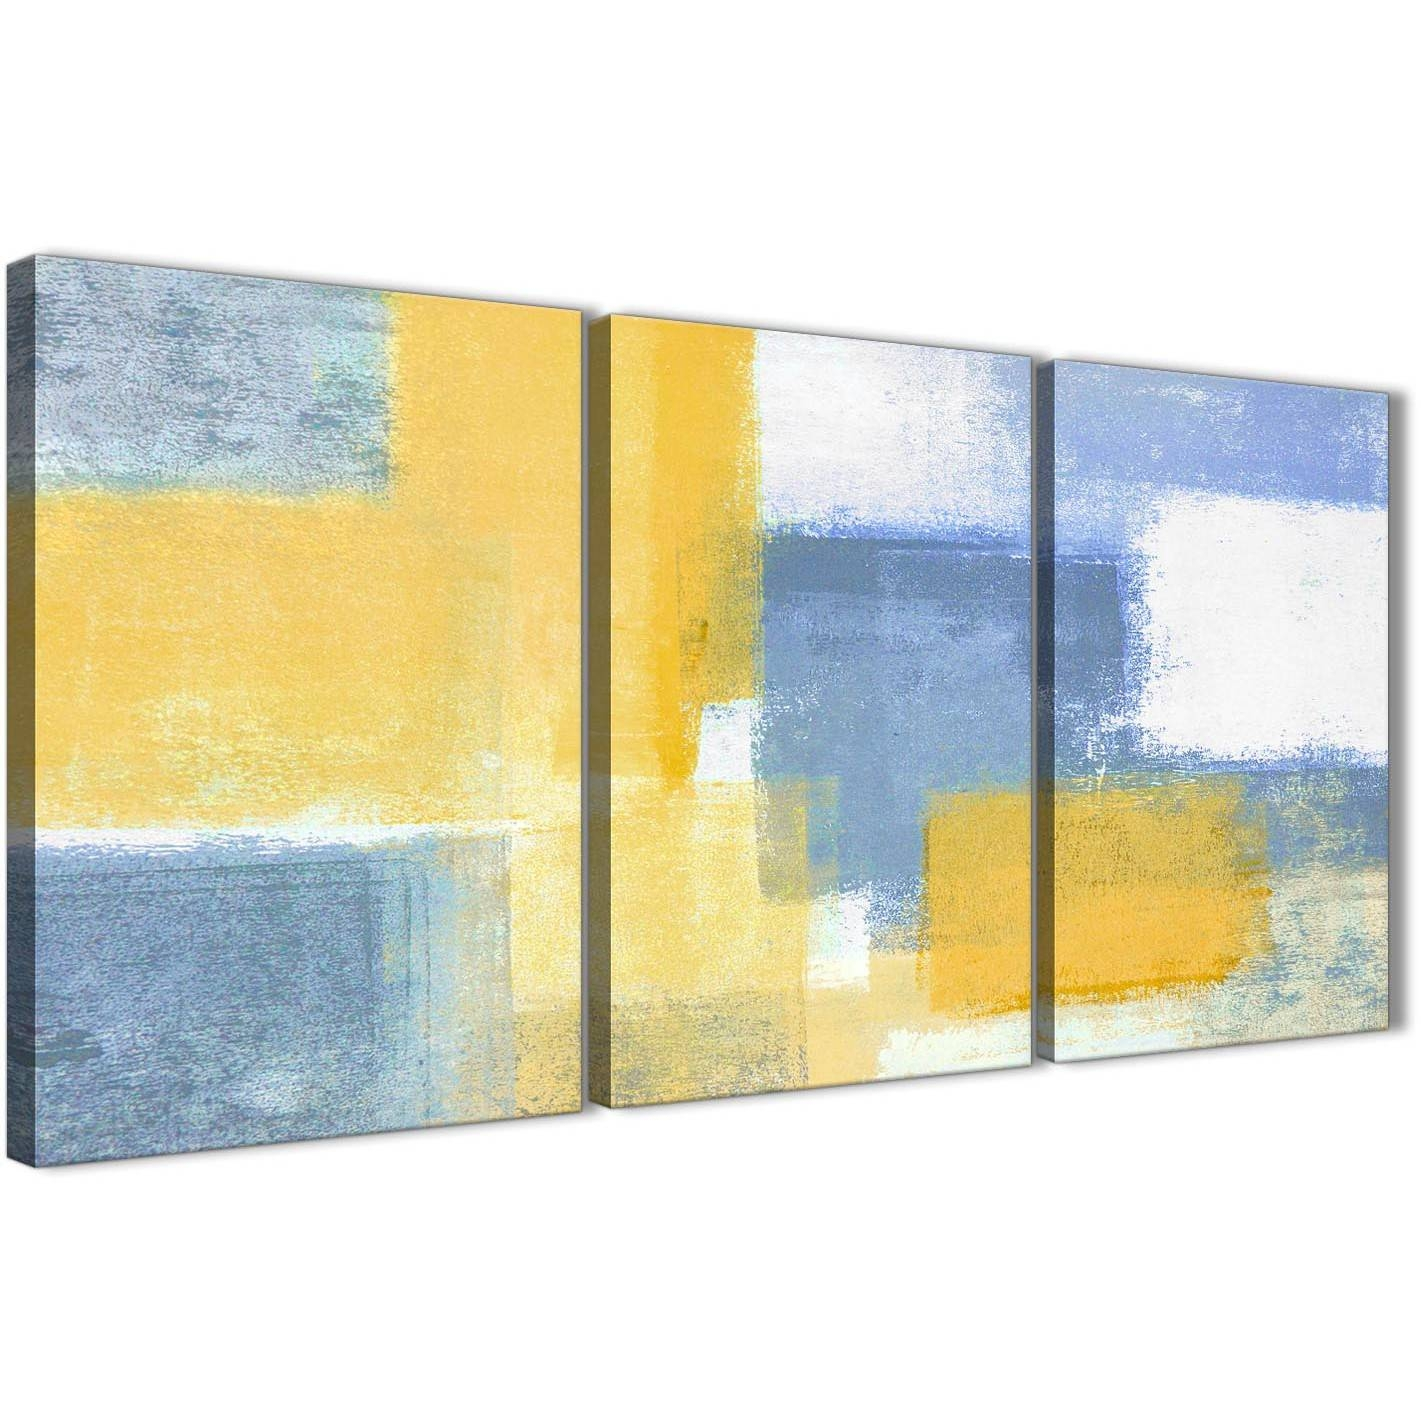 3 Piece Mustard Yellow Blue Kitchen Canvas Pictures Decor Intended For Most Popular Yellow And Blue Wall Art (View 1 of 20)